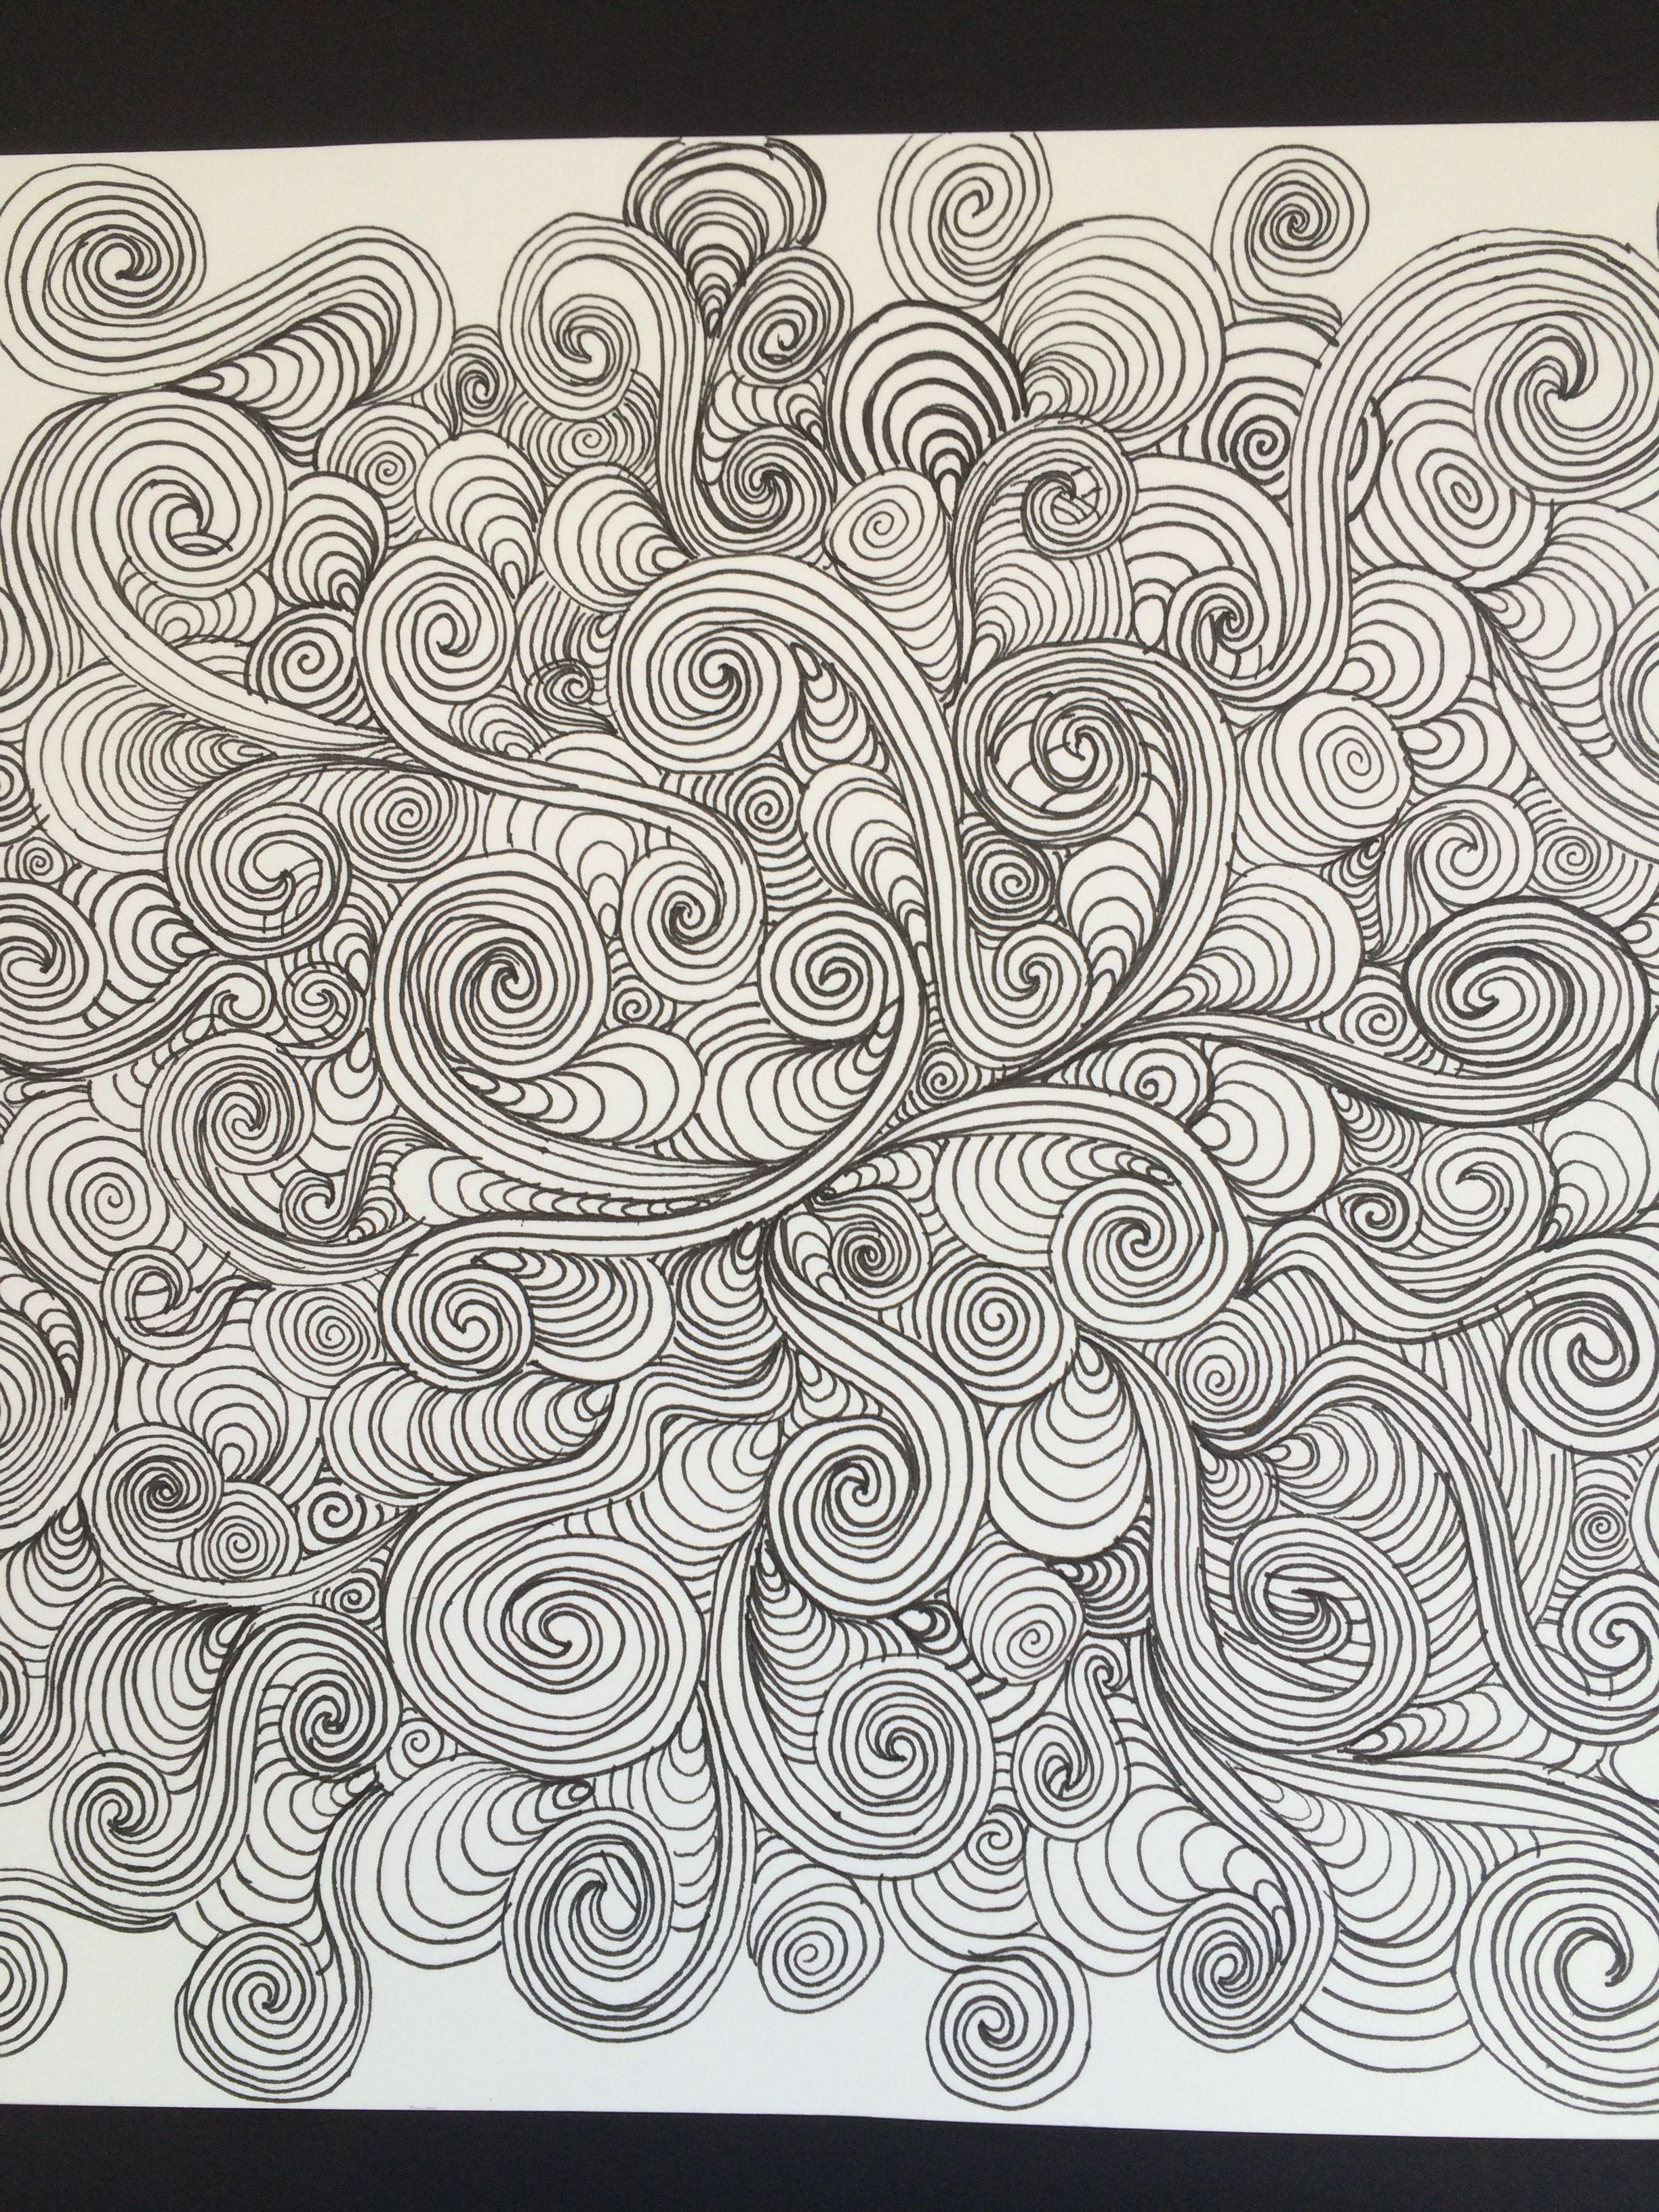 Coloring Pages Of Swirls